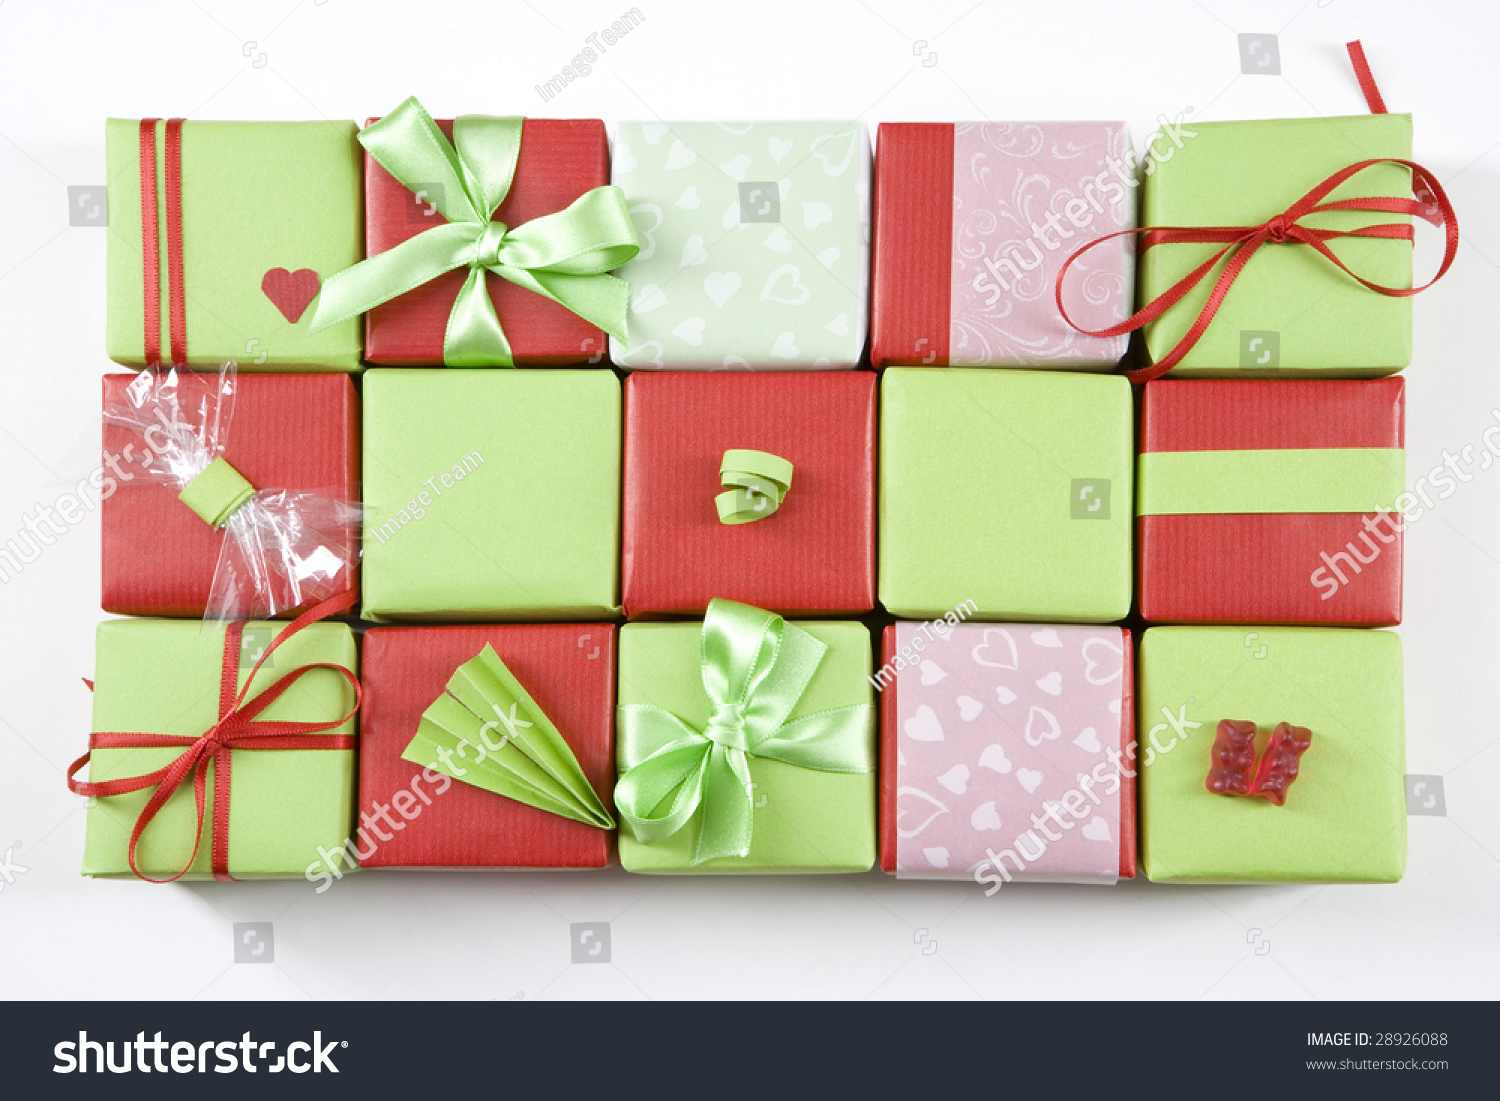 Gift packet stock photo 28926088 shutterstock gift packet negle Choice Image